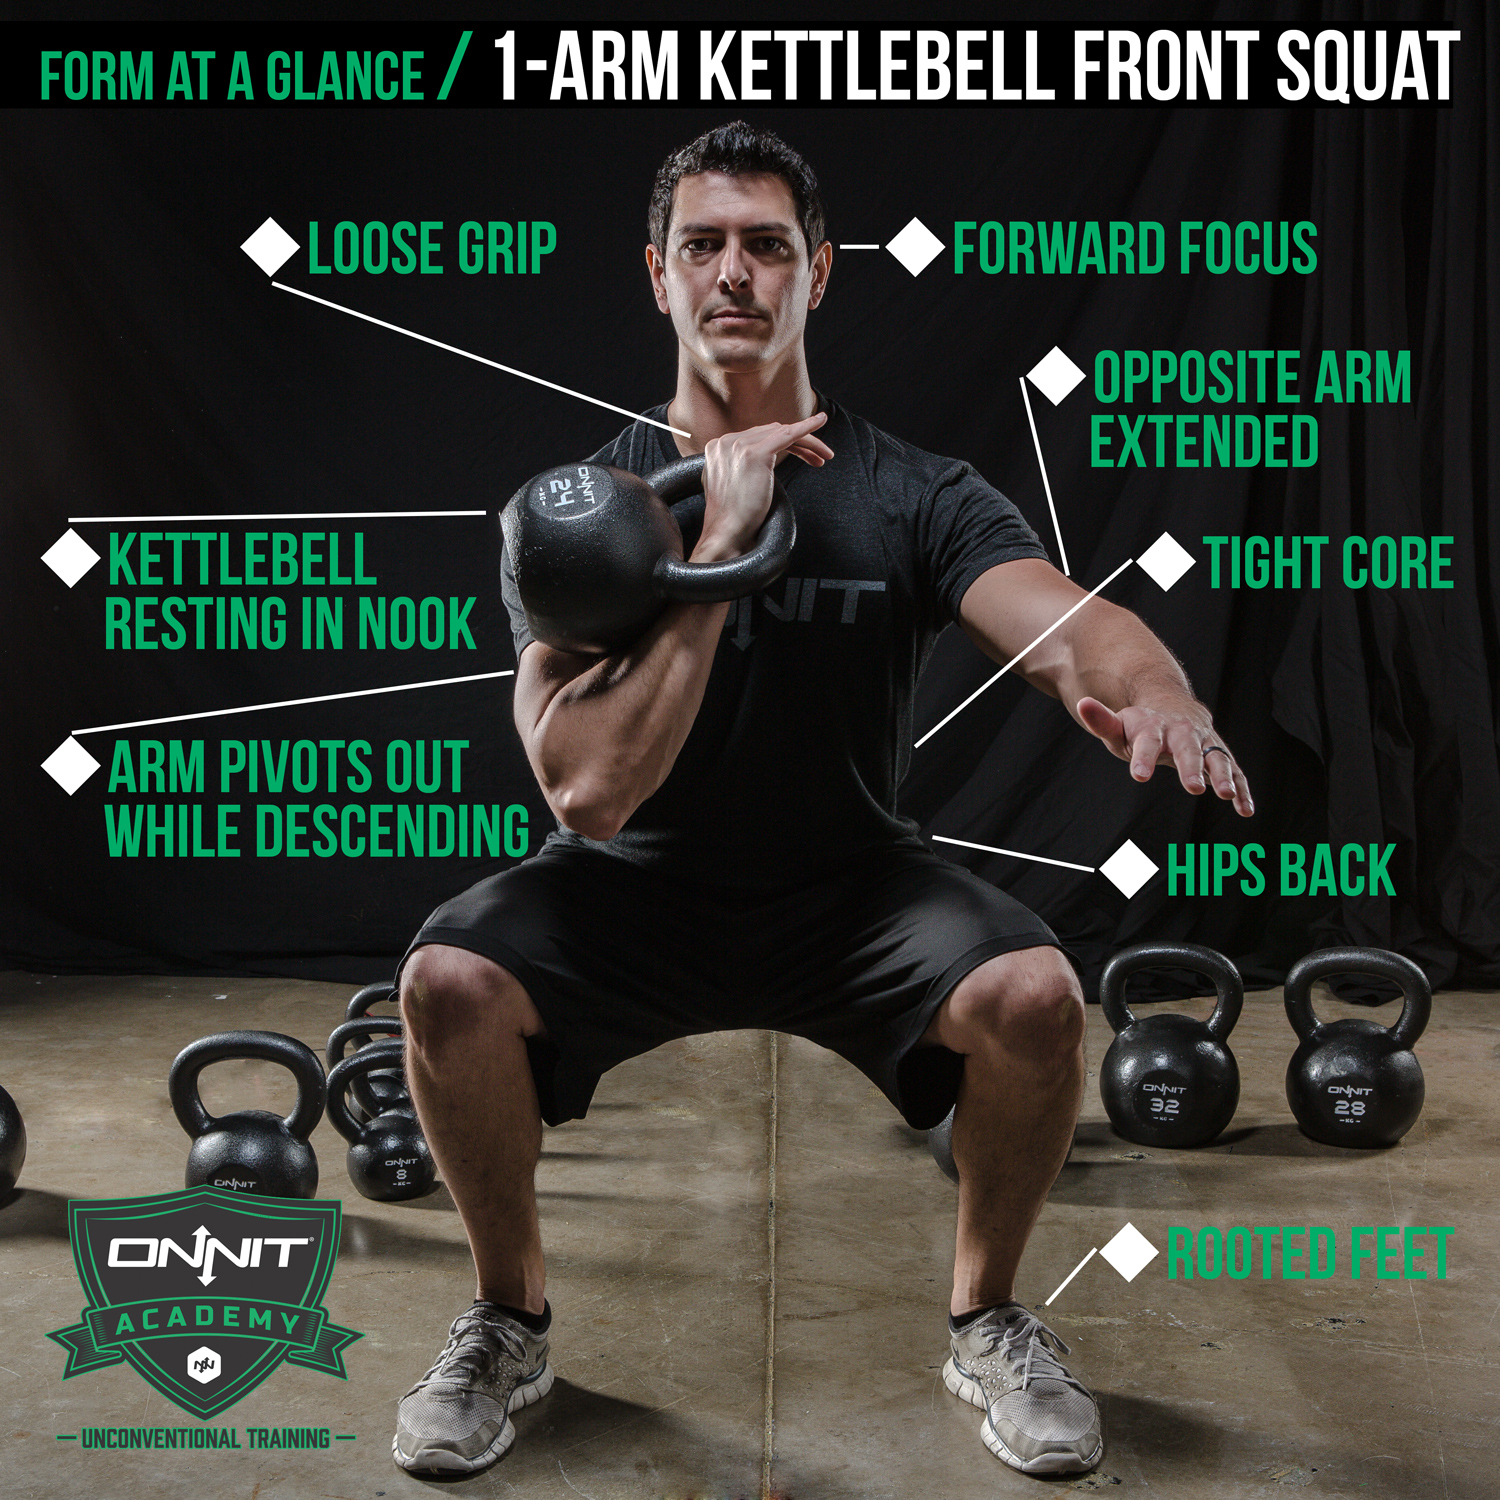 Form at a Glance 1Hand Kettlebell Front Squat  Onnit